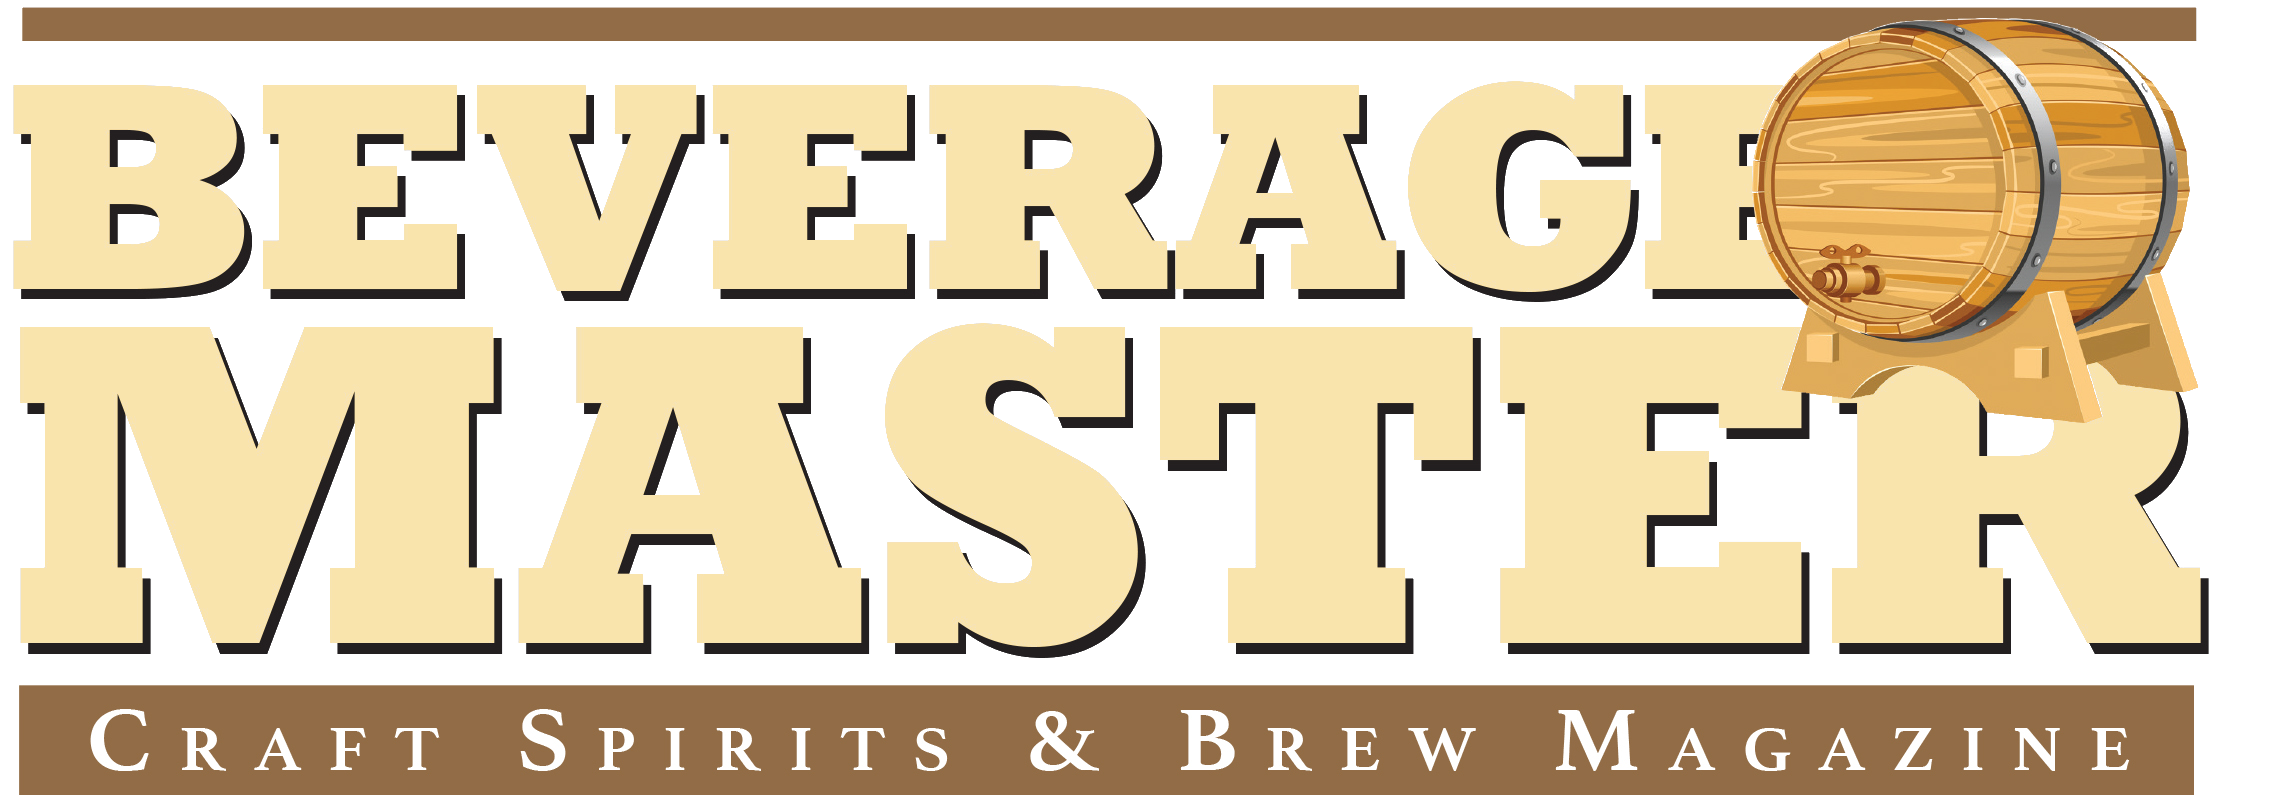 CRAFT SPIRITS & BREW MAGAZINE / Beverage–Master